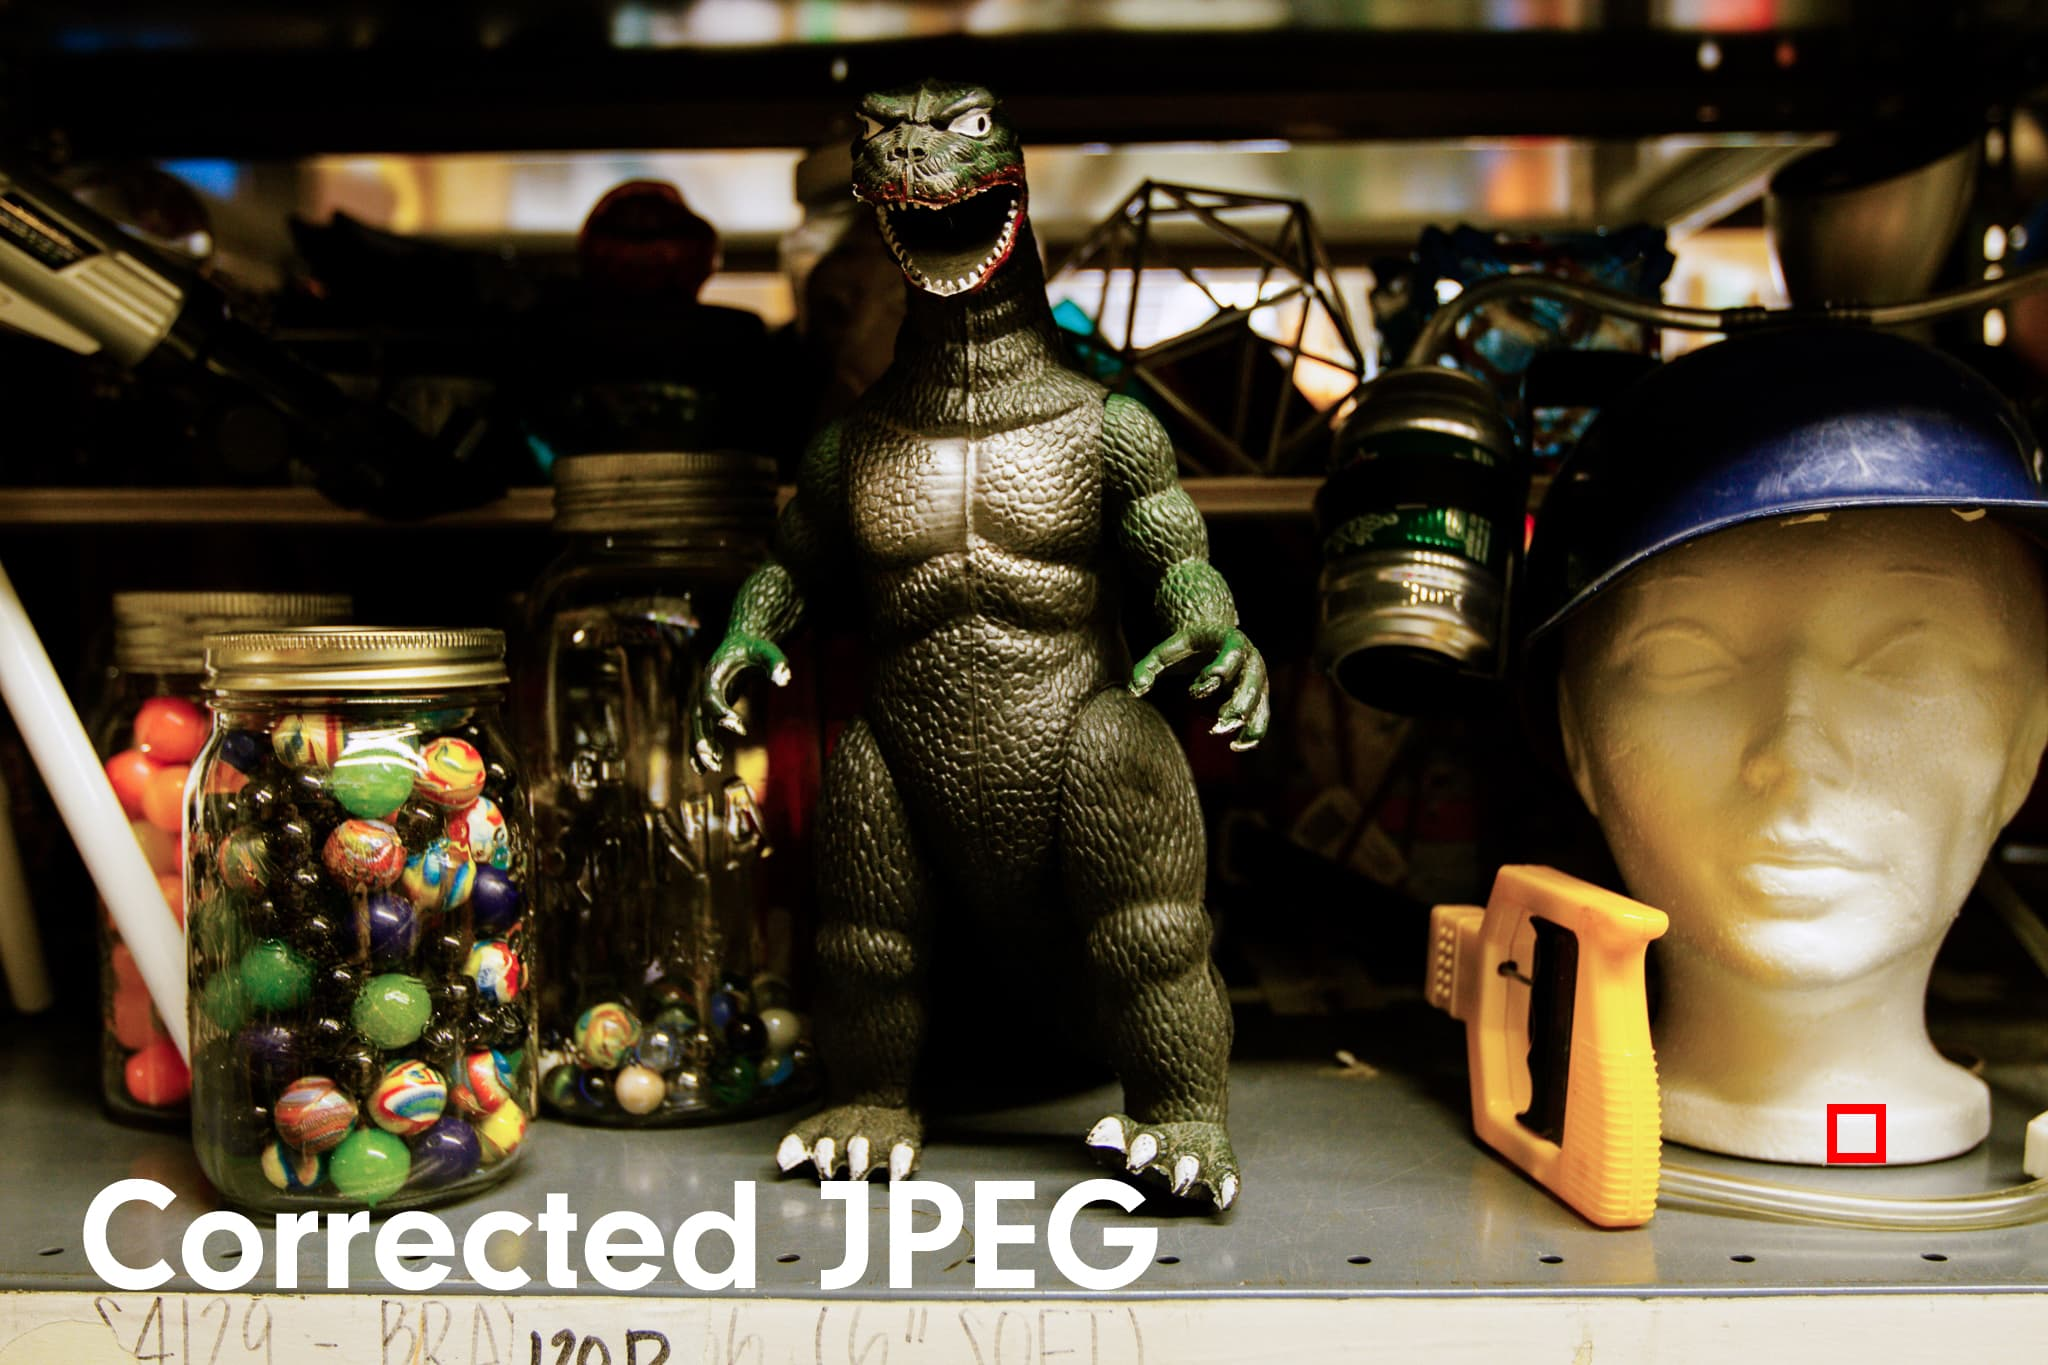 Godzilla toy in craft shop showing JPEG file whose white balance was corrected.